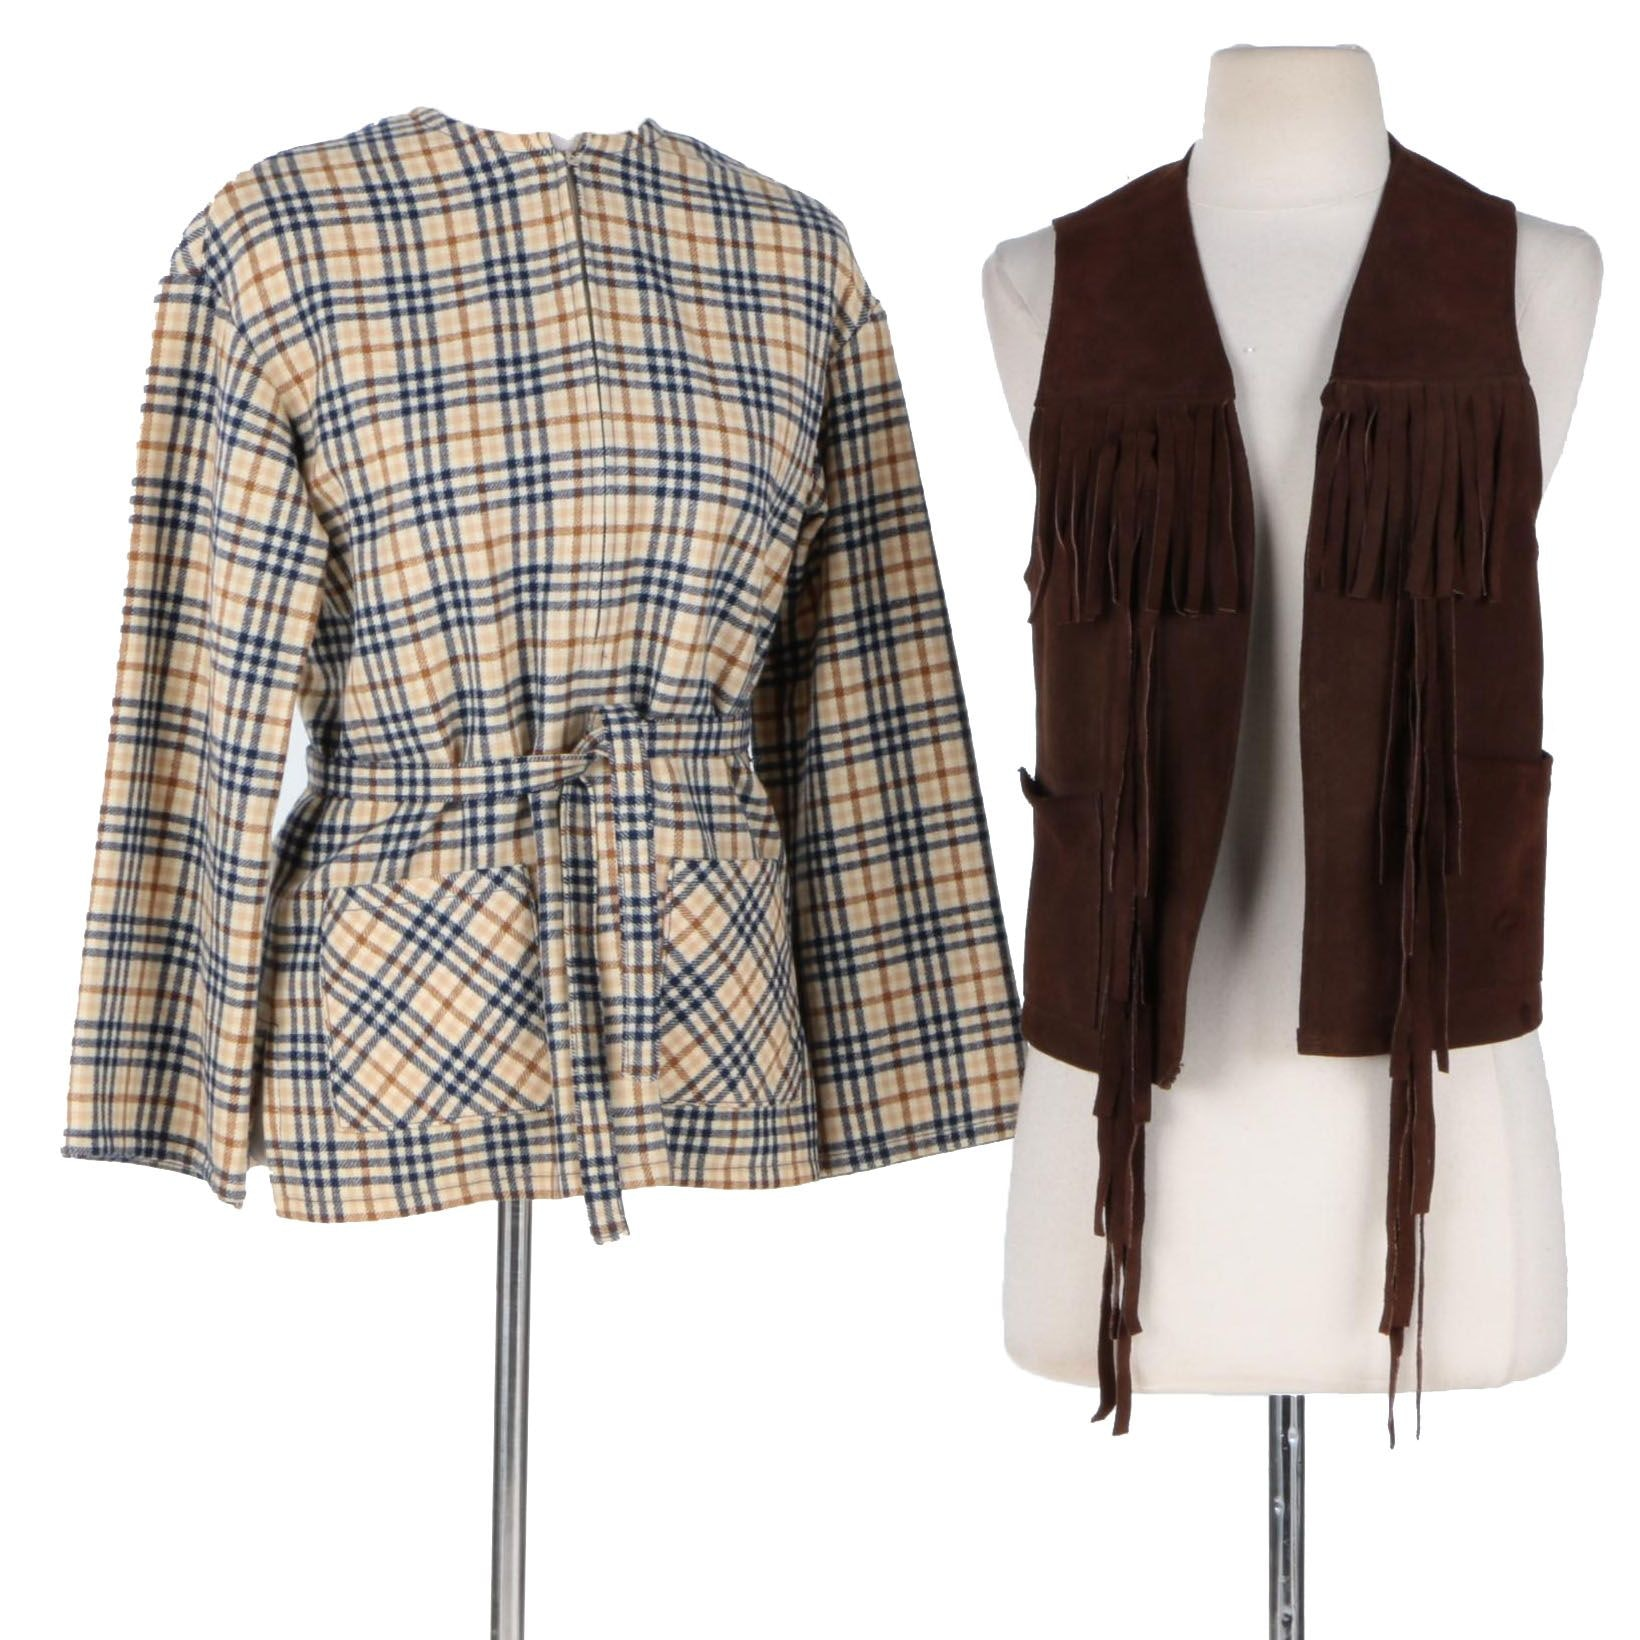 Circa 1970's Women's Young Pendleton Jacket and Suede Vest